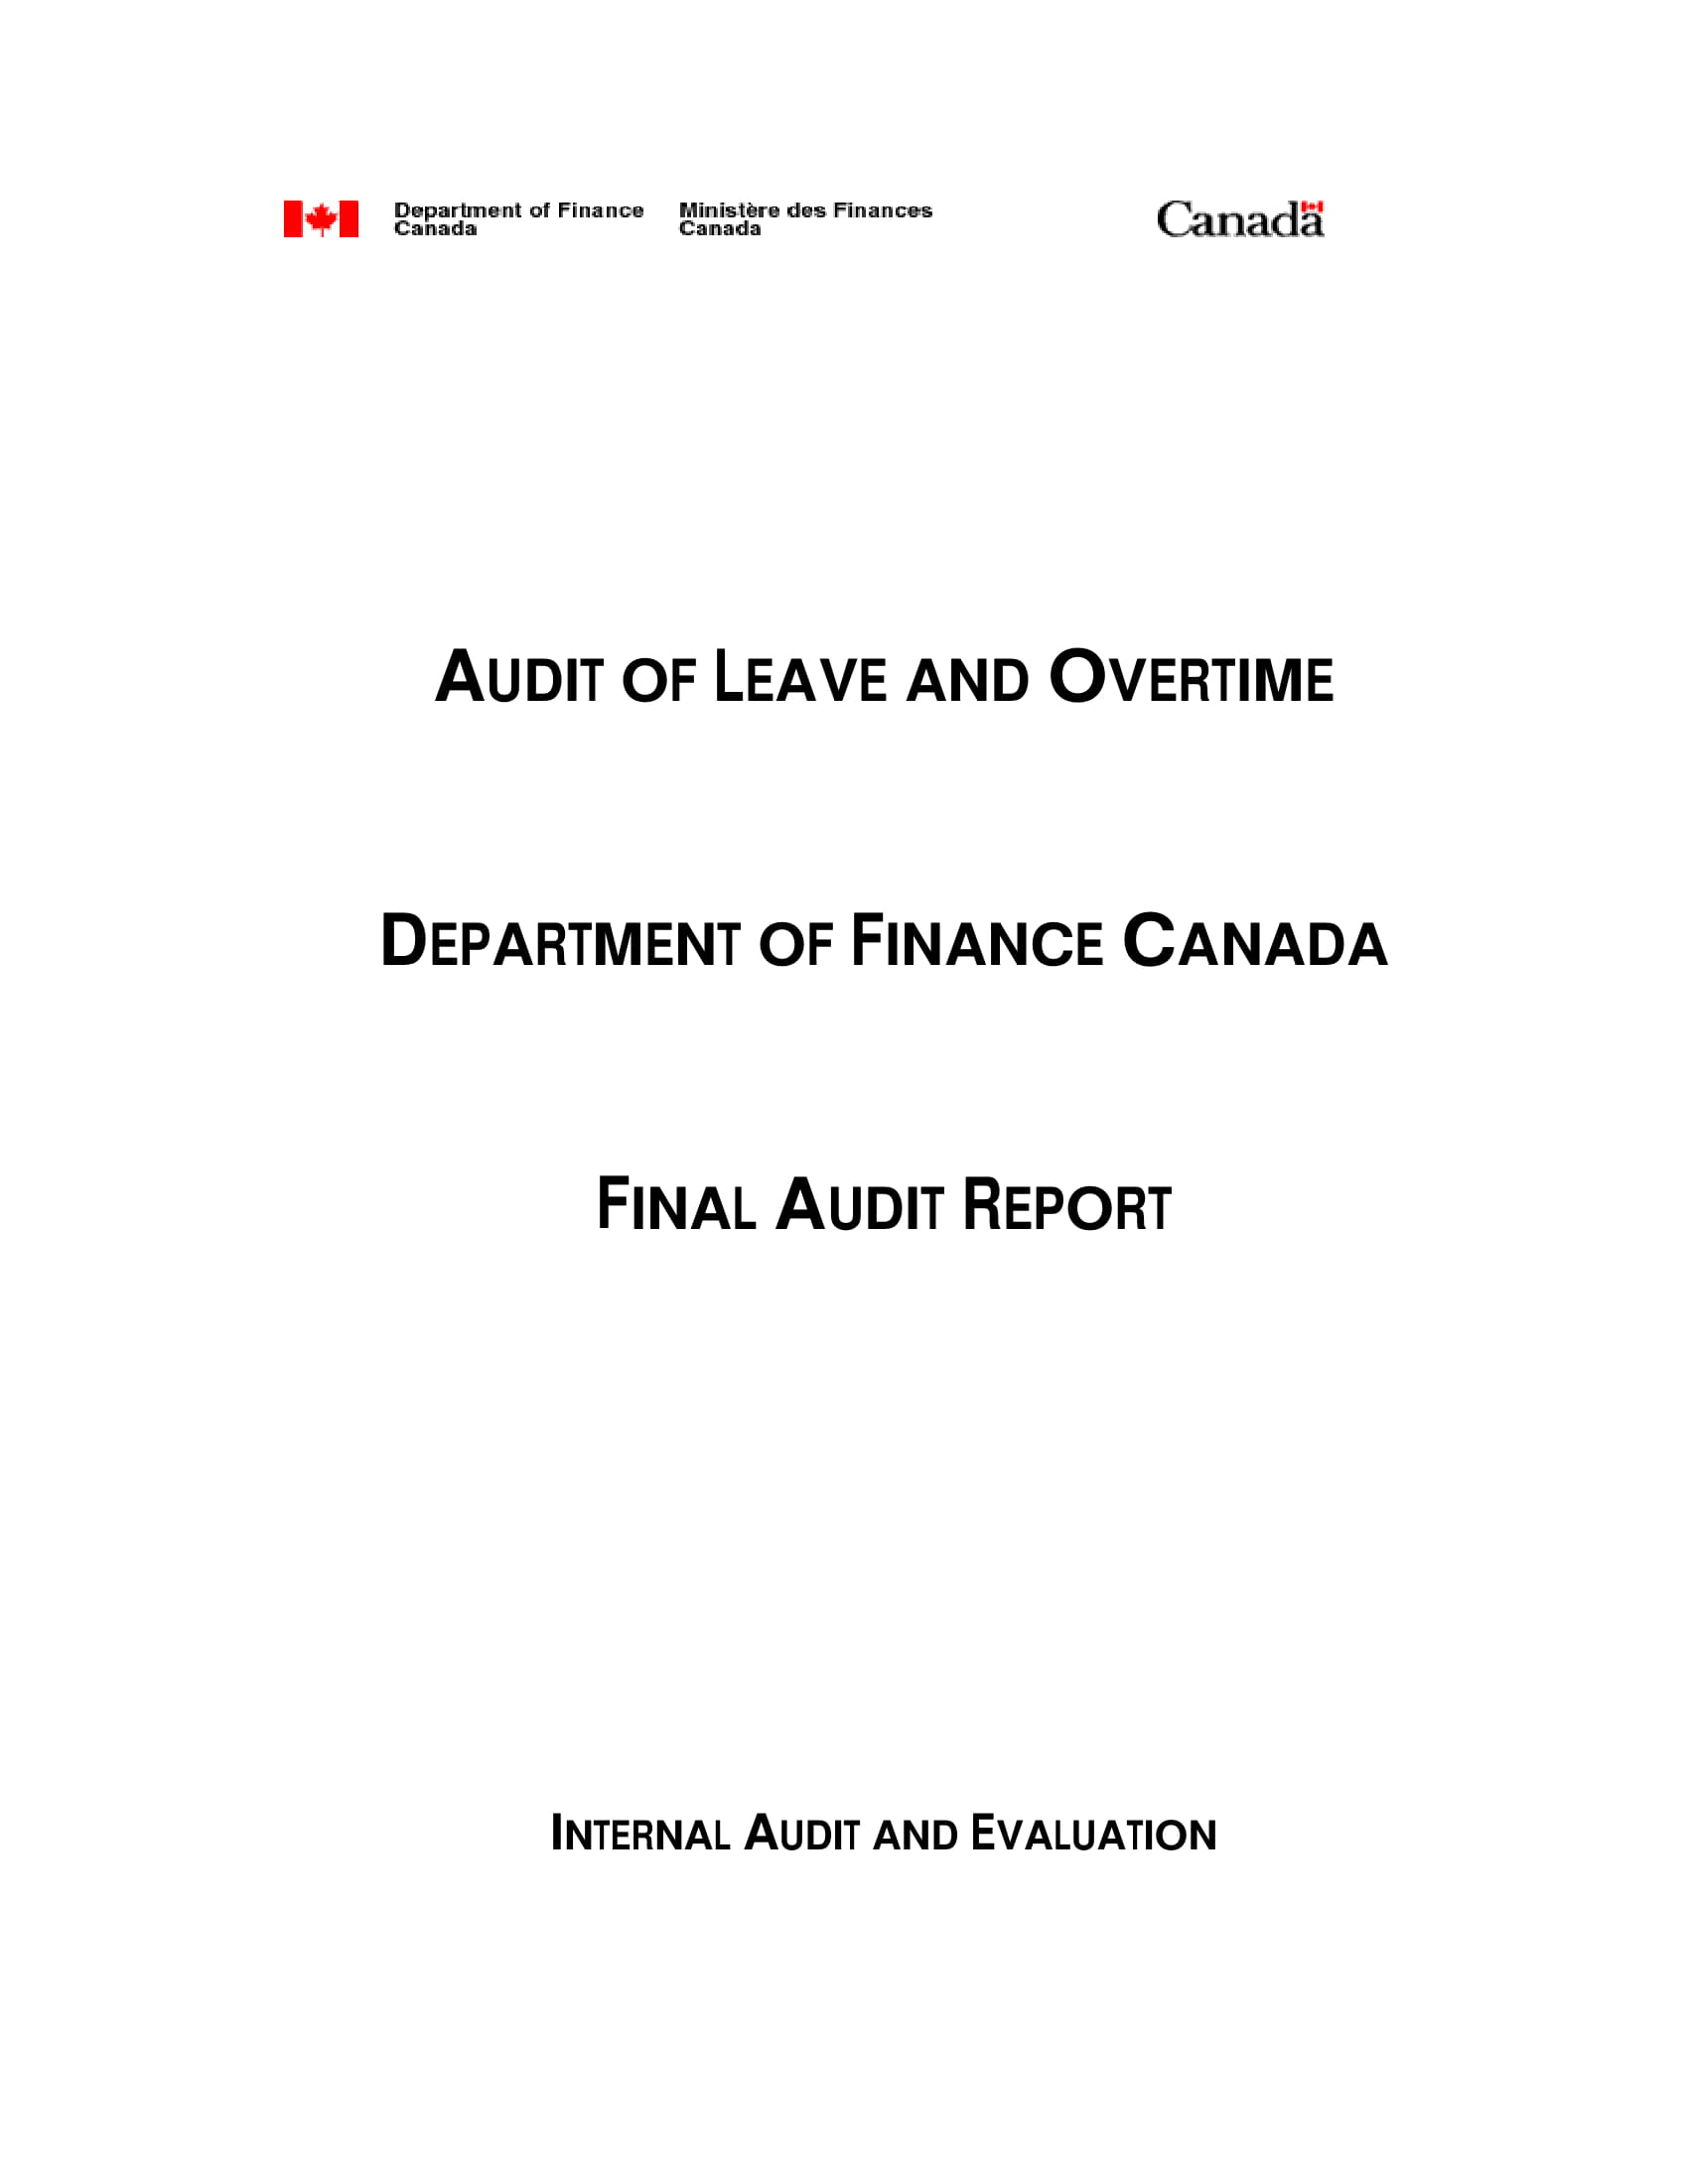 audit of leave and overtime report example